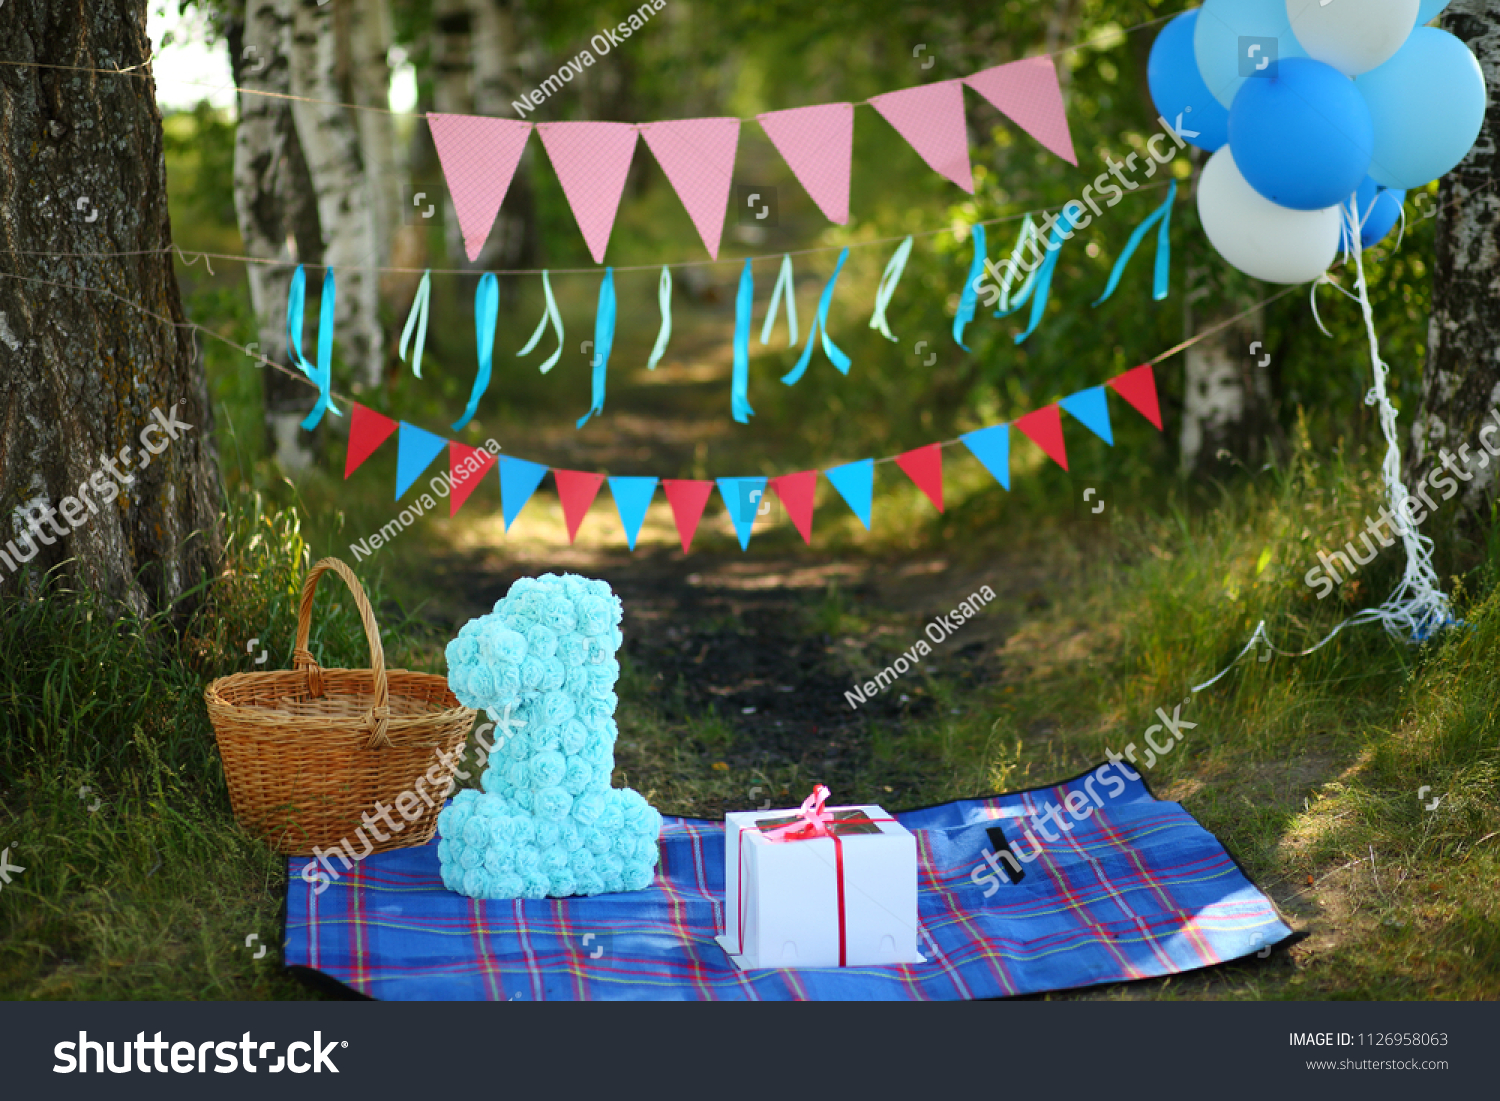 Decoration For First Birthday Smash The Cake Outdoor